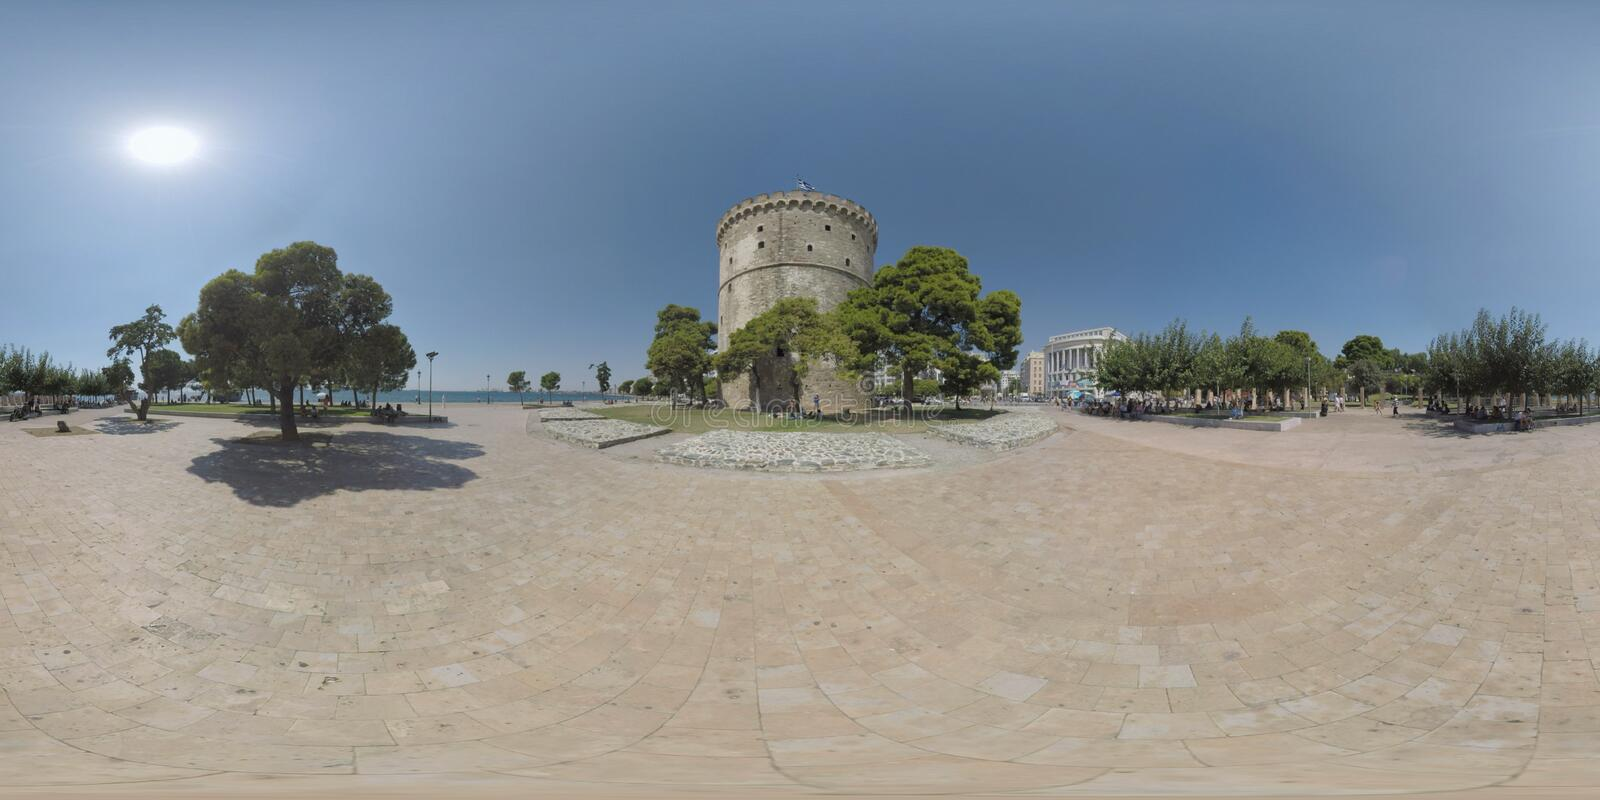 360 VR White Tower Square with people relaxing under the trees. Thessaloniki stock image